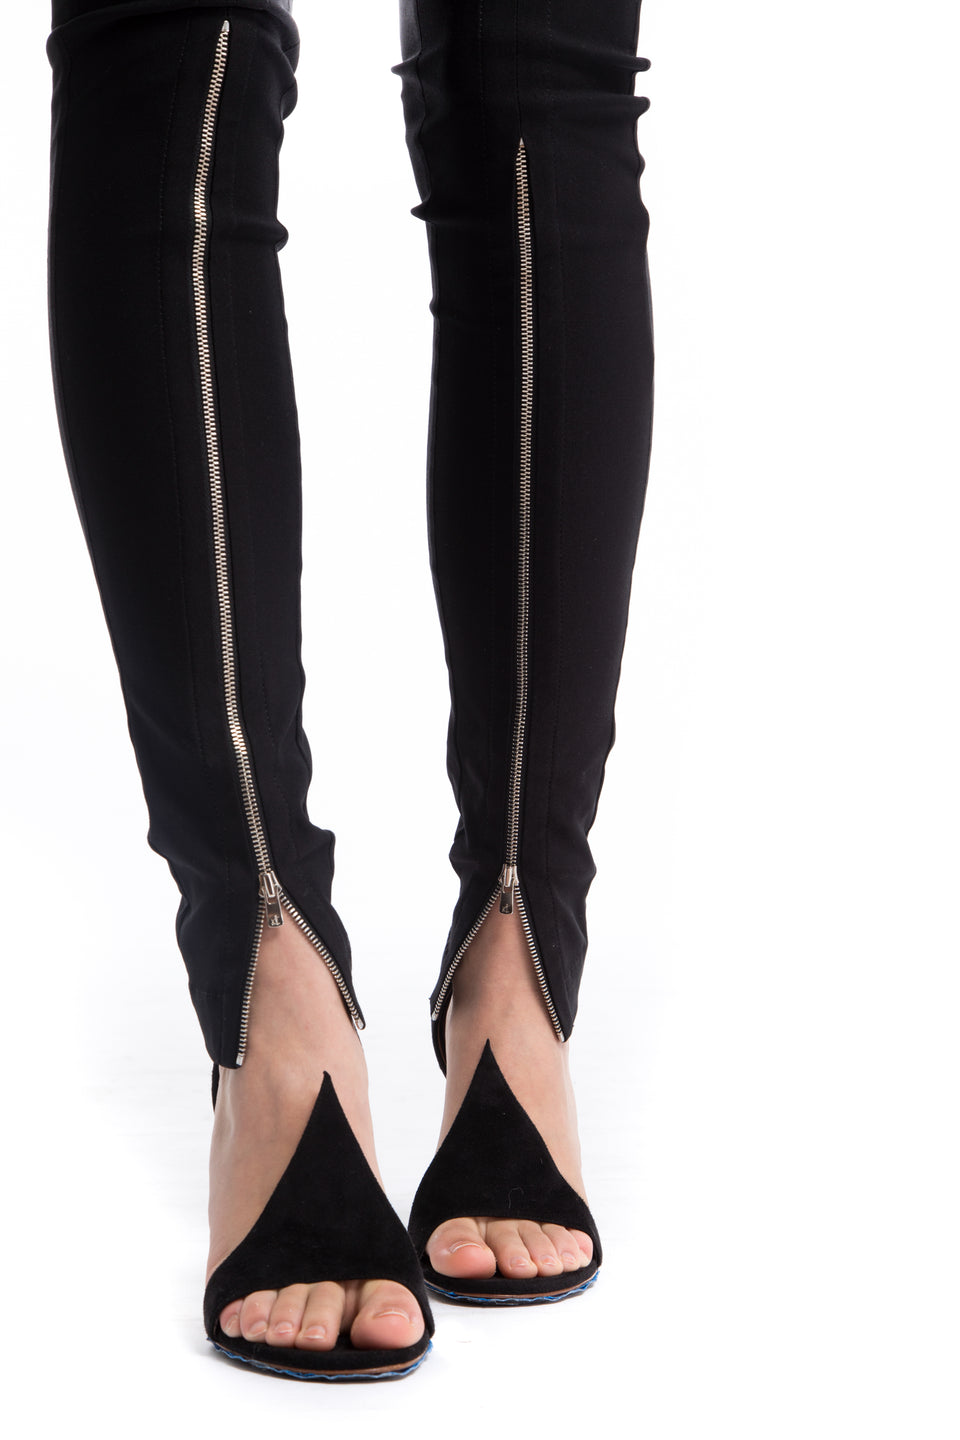 NINObrand black skinny Pants with front silver long zippers